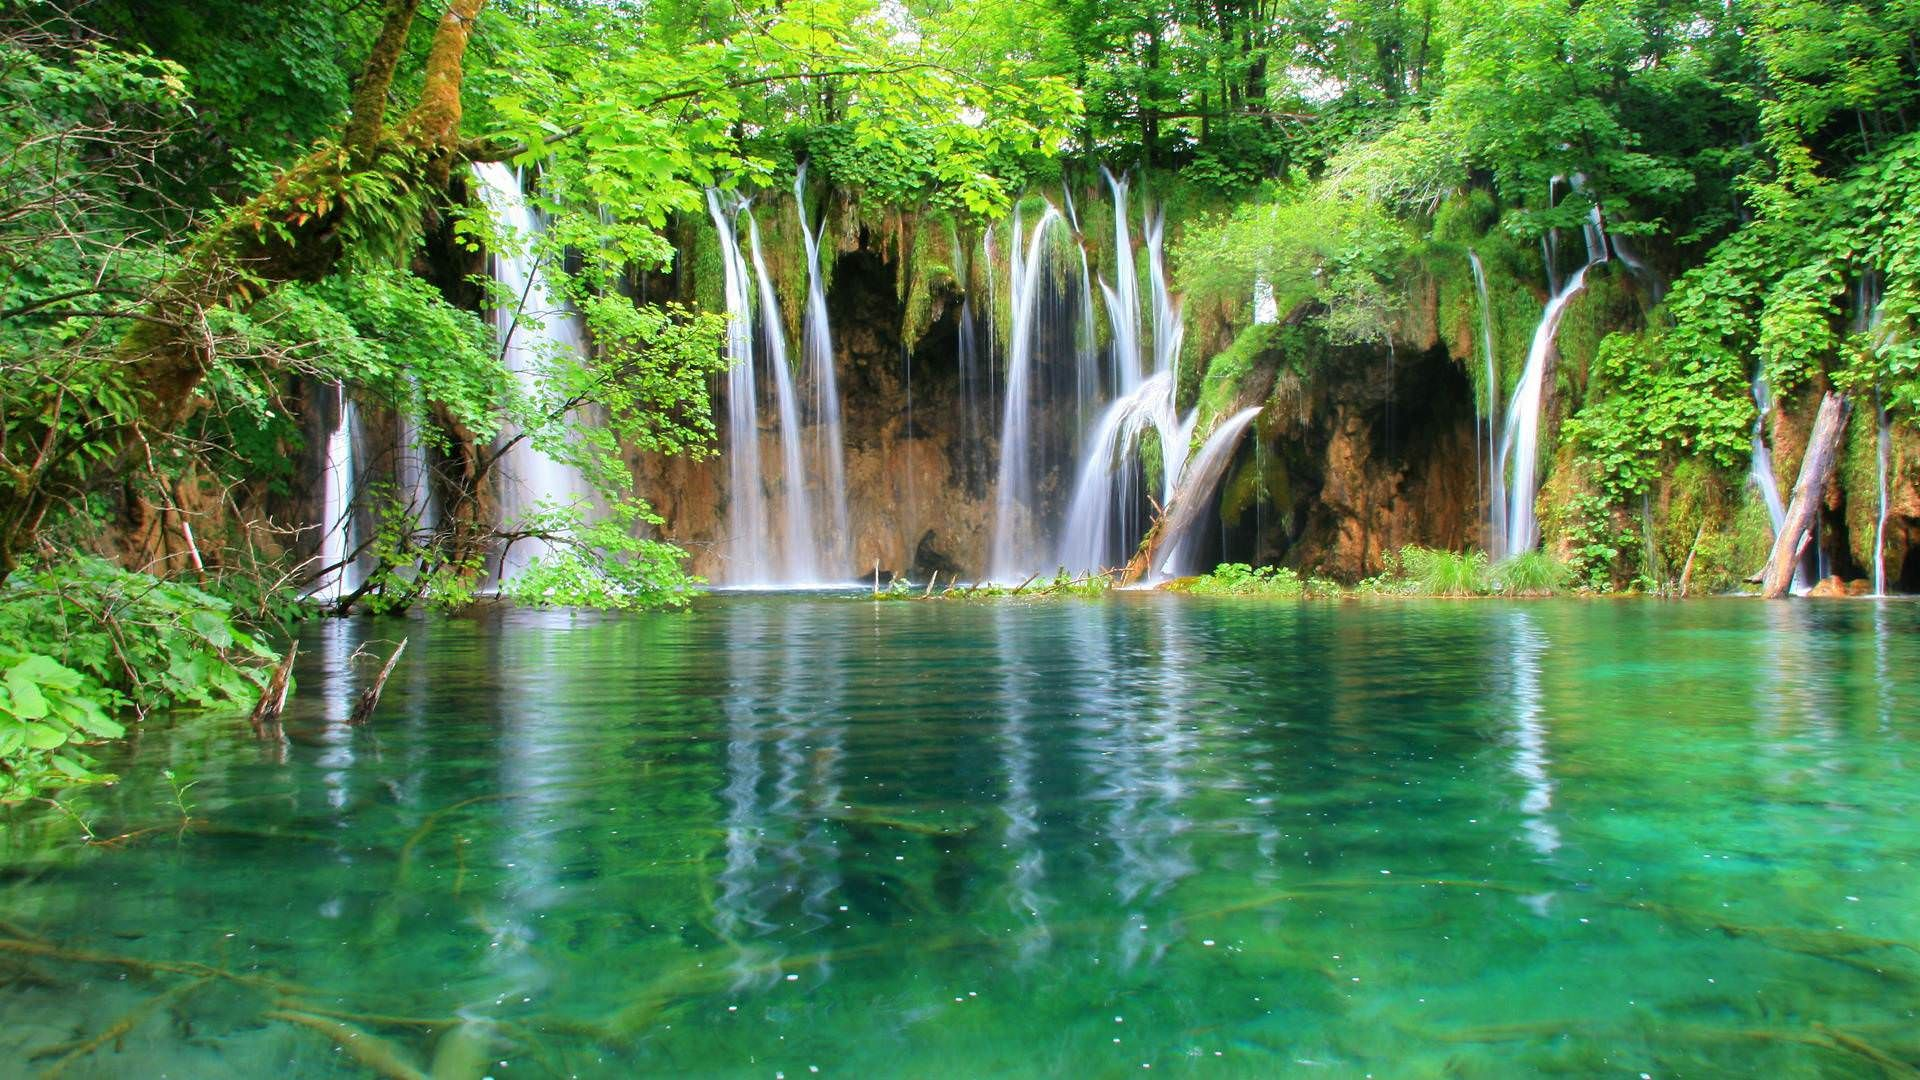 Plitvice Lakes National Park Croatia [19201080] Hd wallpaper 1920x1080